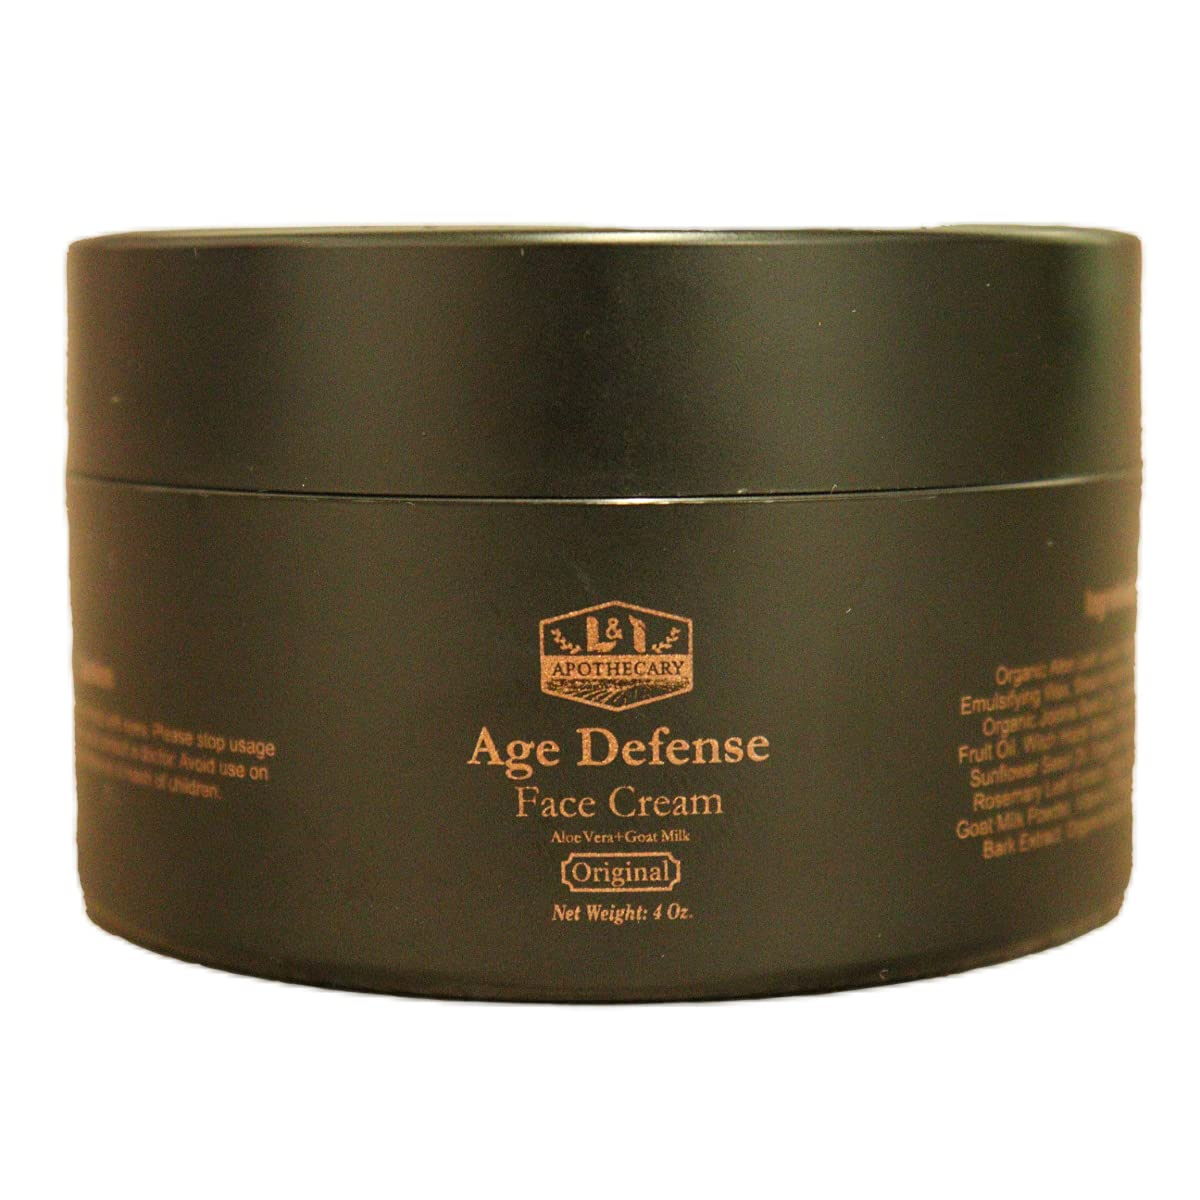 4 Ranking integrated 1st place Oz. Age Defense Face Cream With + Ester New product type Aloe C Vera Vitamin